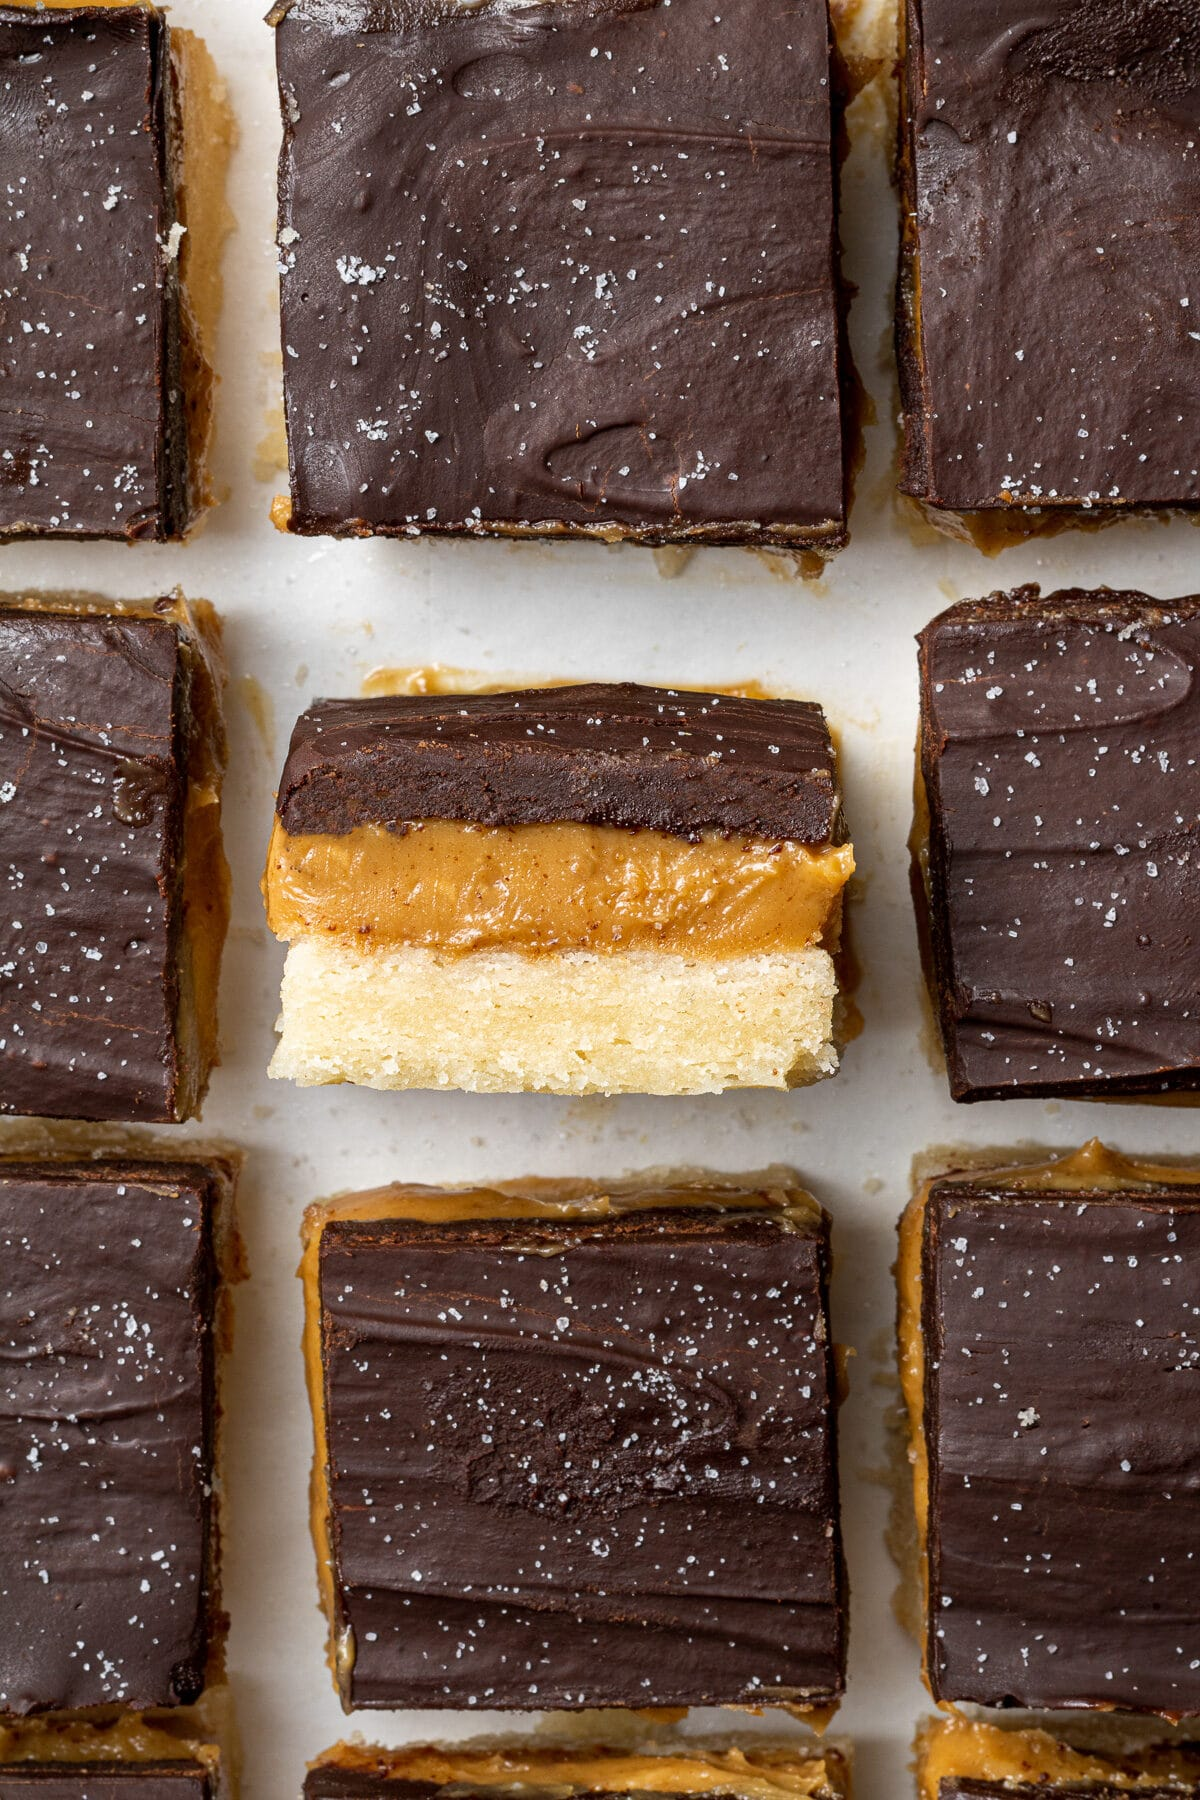 a vegan millionaire shortbread bar on it's side showing the layers surrounded by other millionaire bars